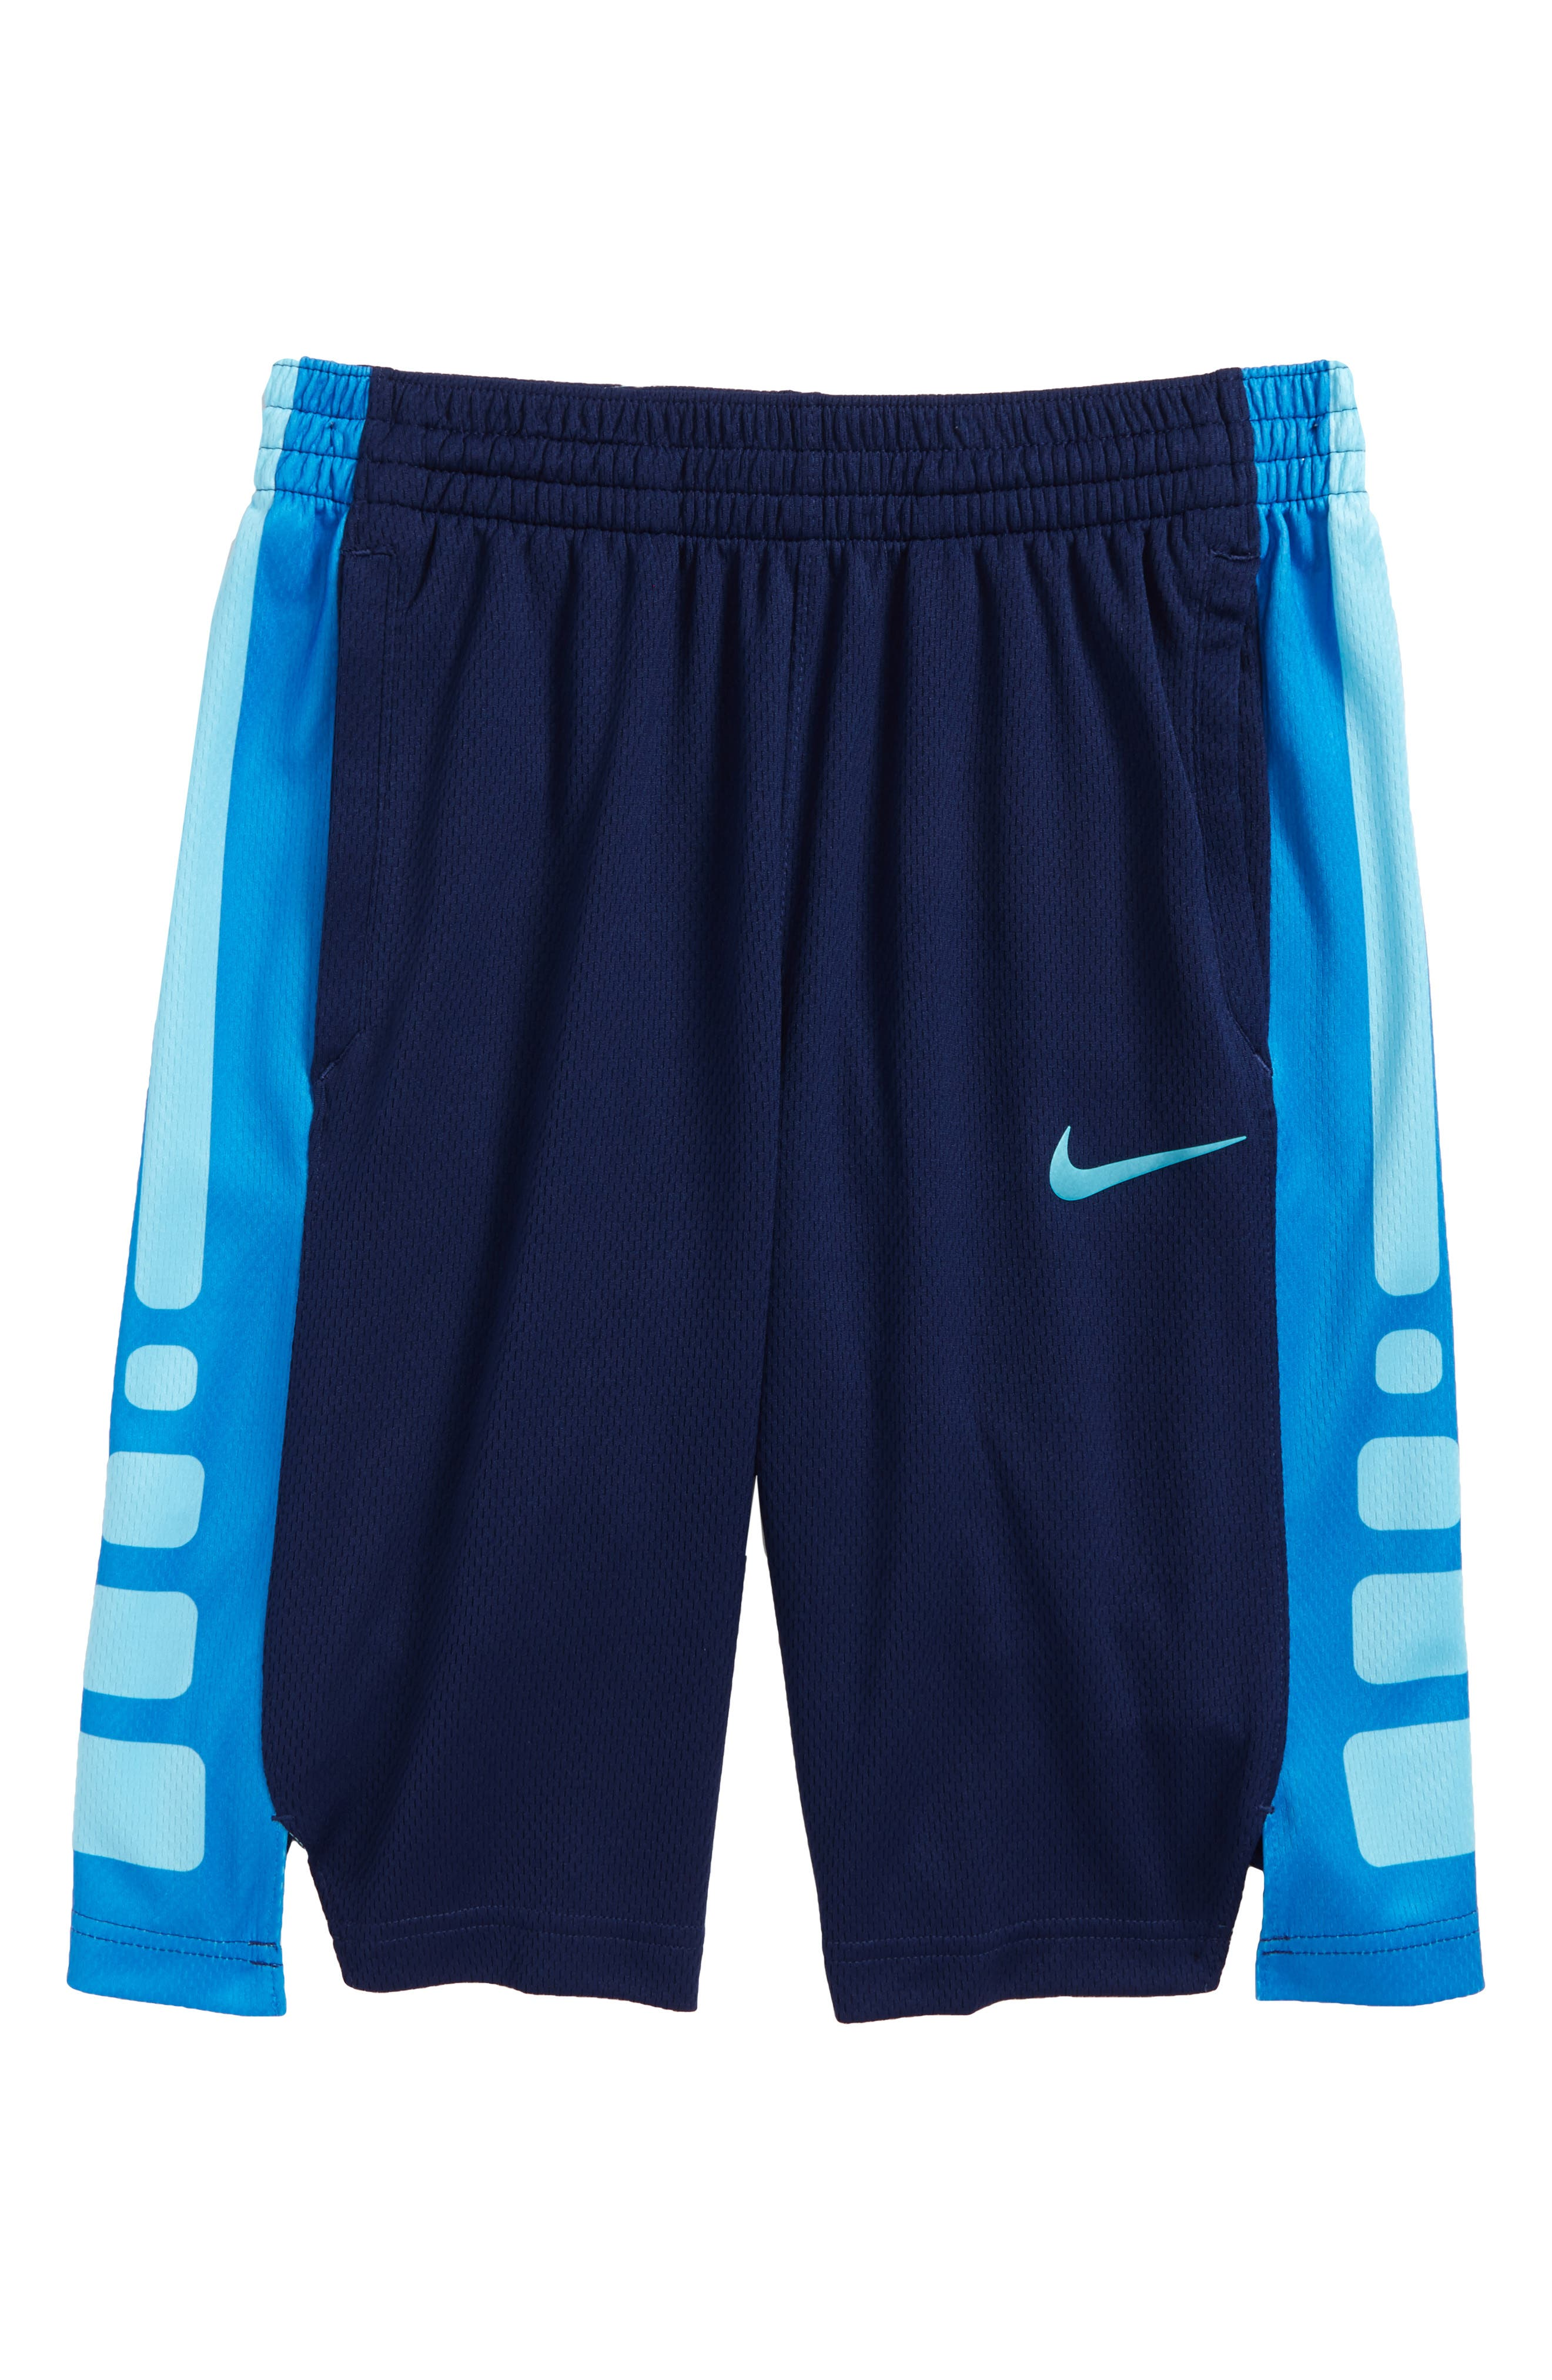 Dry Elite Basketball Shorts,                             Main thumbnail 42, color,